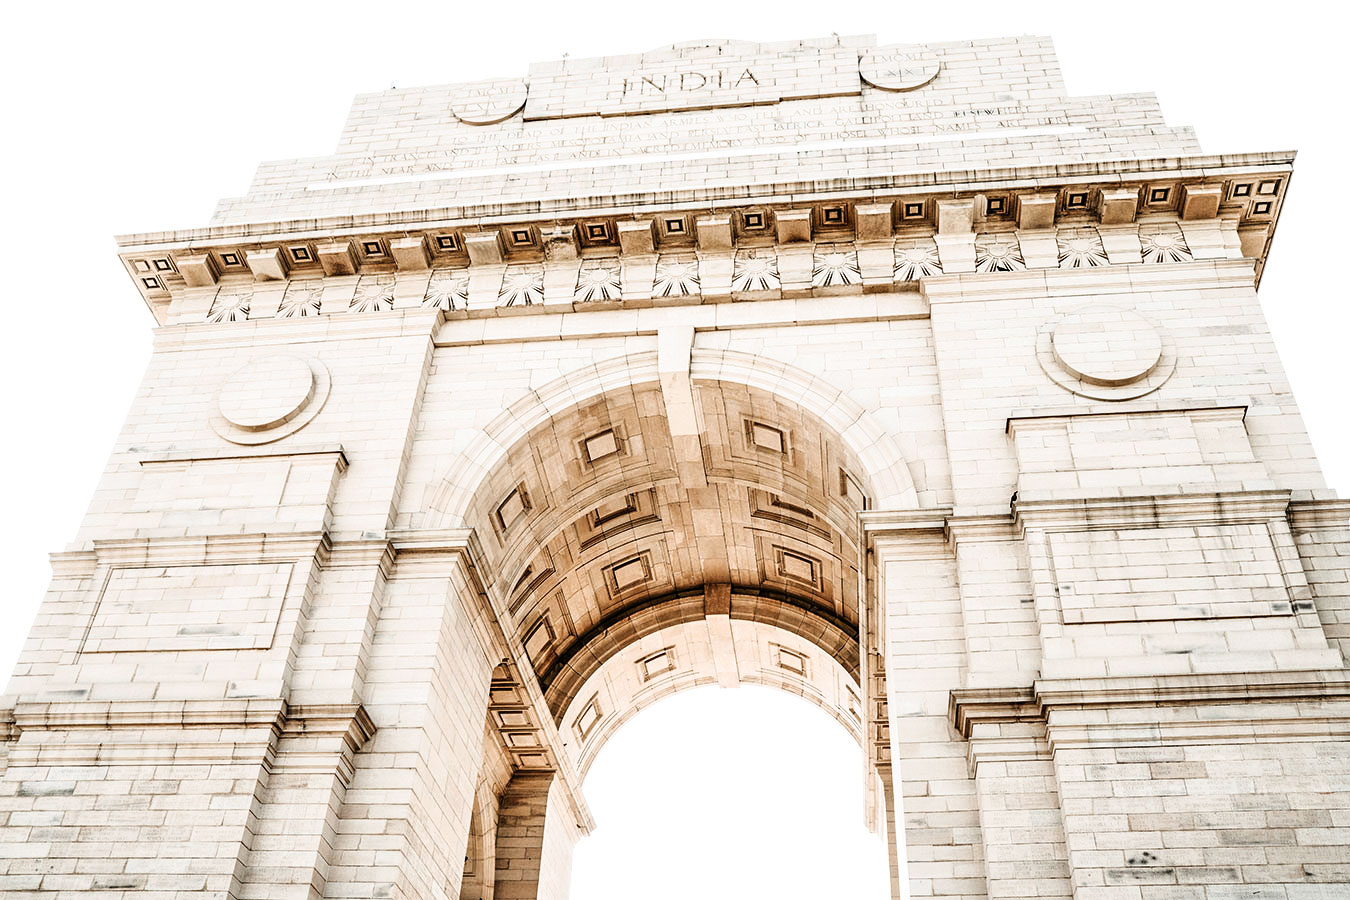 ind-independence-day-2018-india-gate-new-delhi.jpg